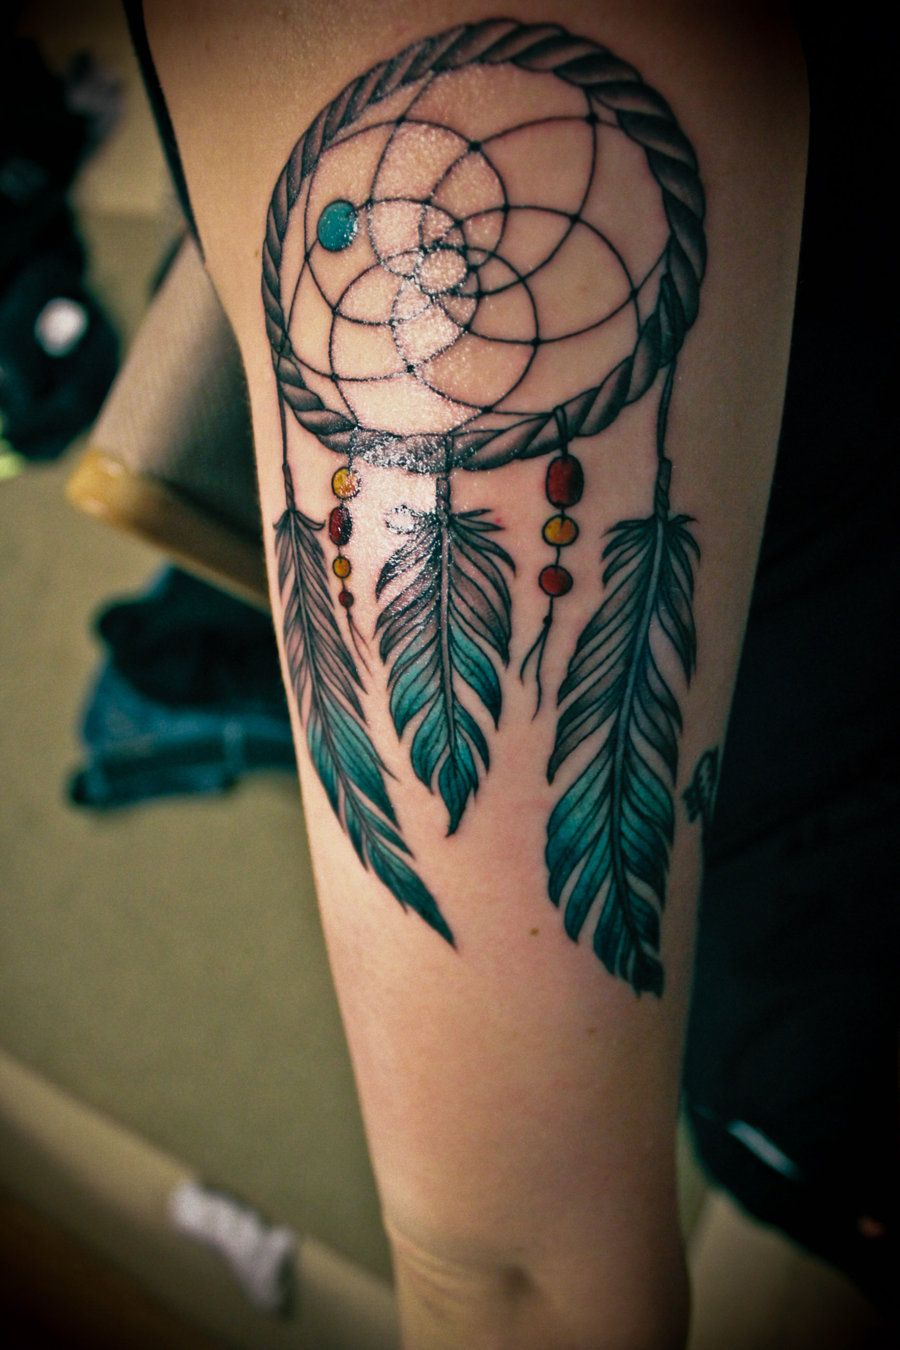 80 crazy and amazing tattoo designs for men and women desiznworld - Feather Tattoos